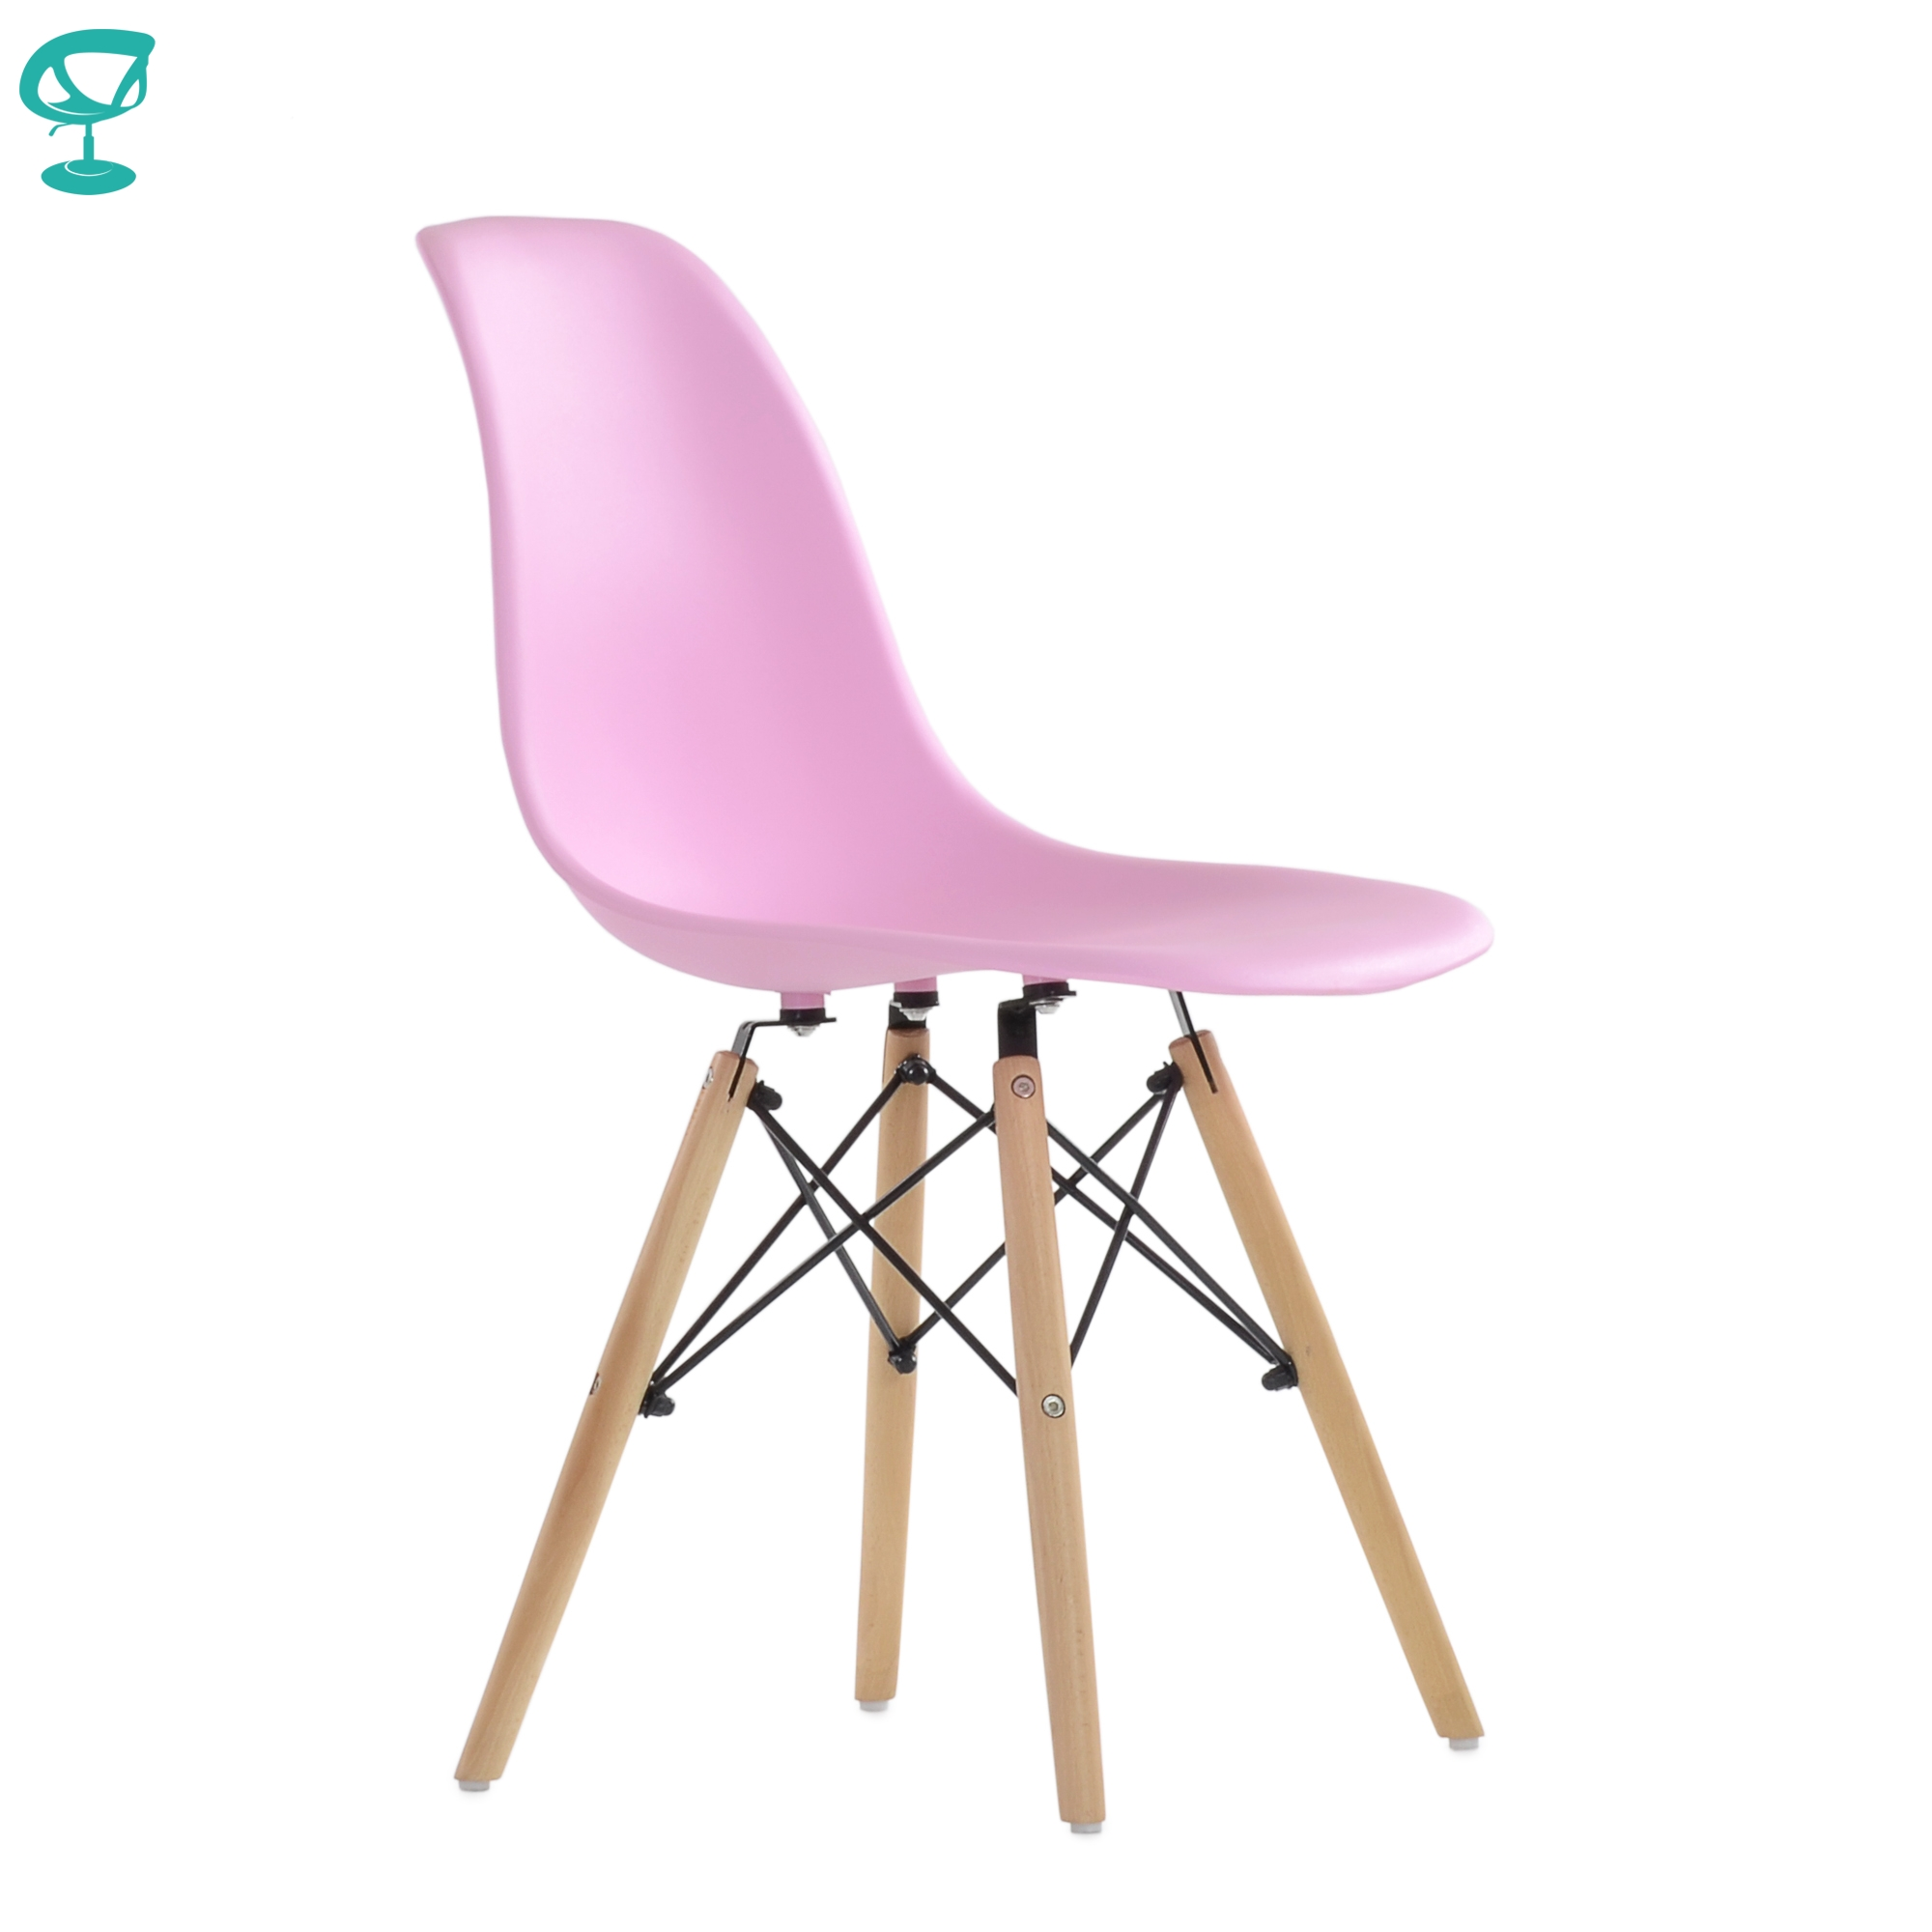 95712 Barneo N-12 Plastic Wood Kitchen Breakfast Interior Stool Bar Chair Kitchen Furniture Free Delivery In Russia